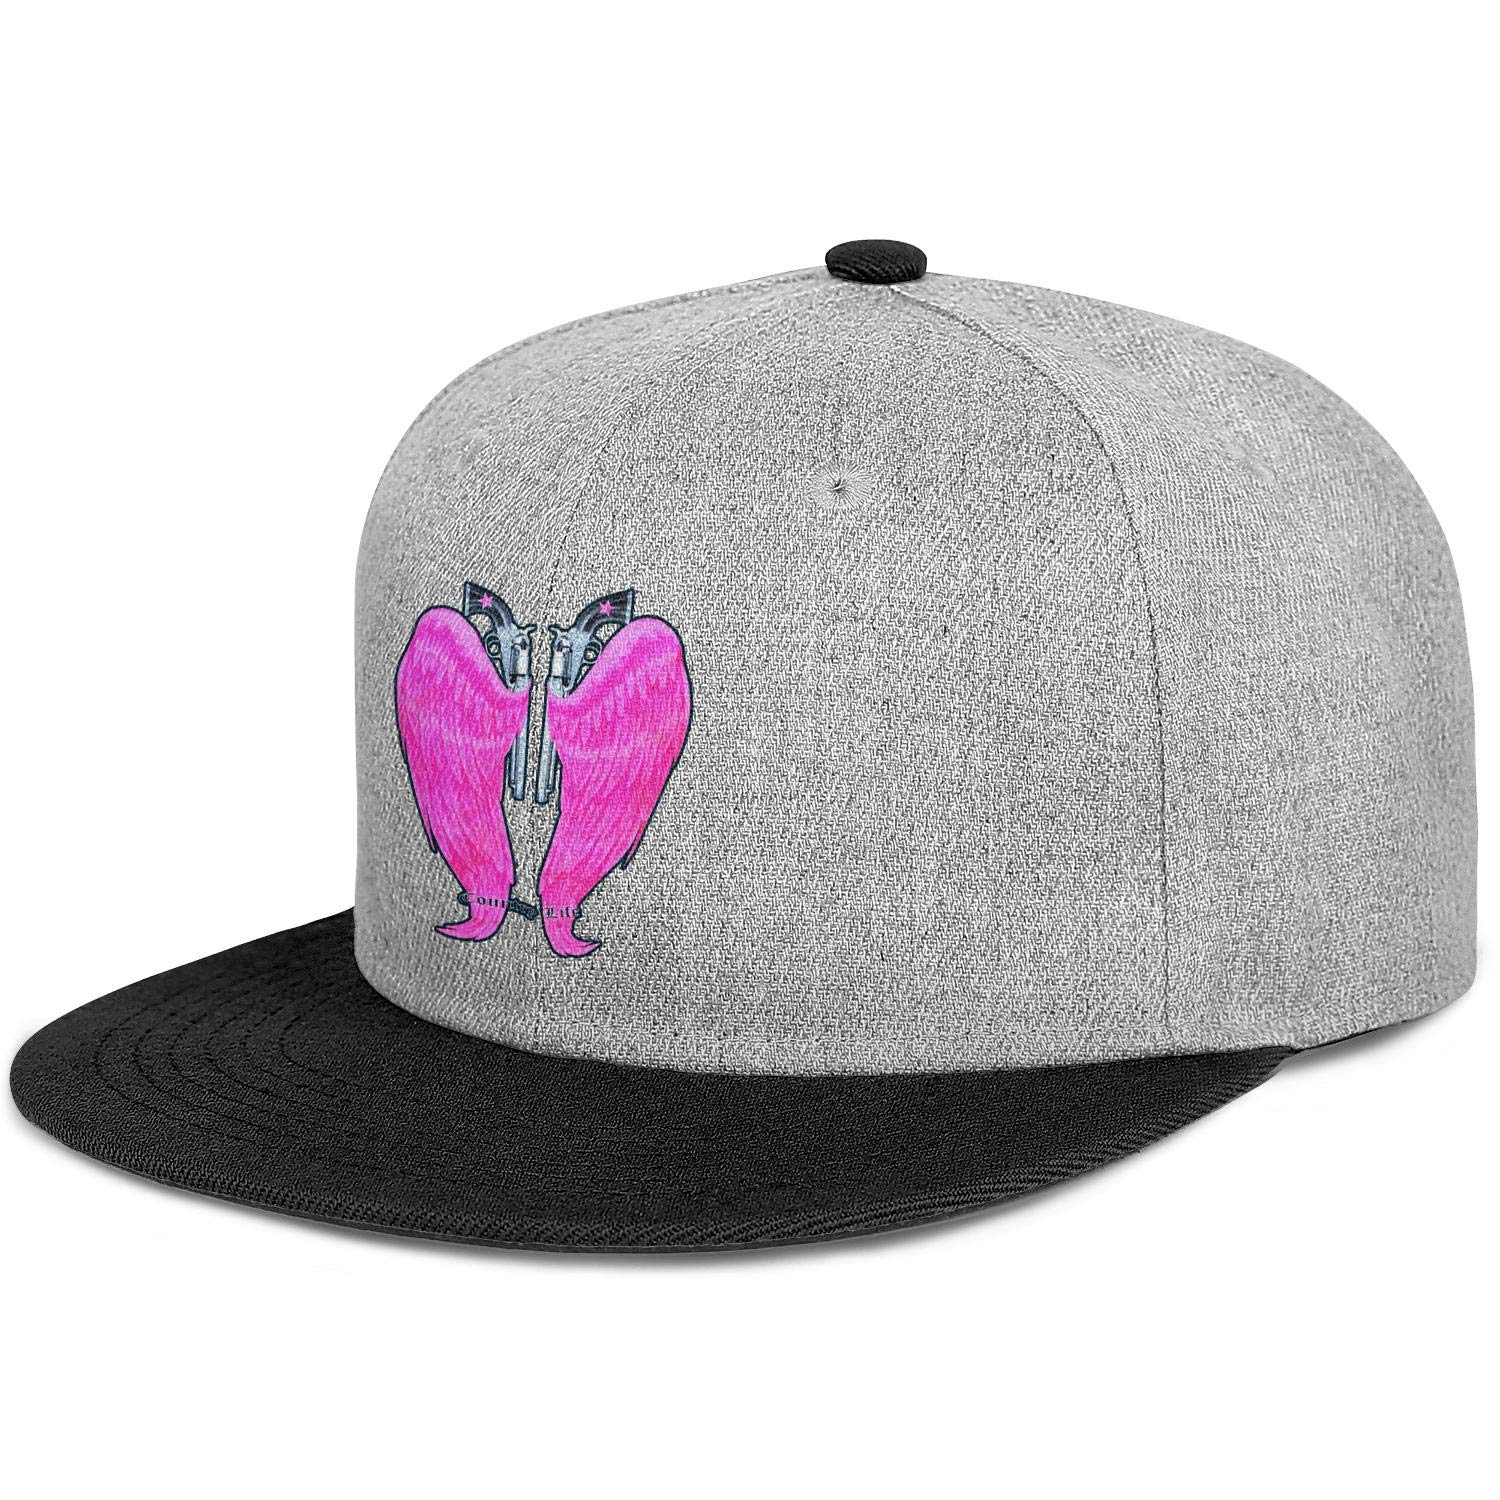 Country Life Guns and Angel Wings Black and Pink Men Women Wool Ball Cap Adjustable Snapback Sports Hat